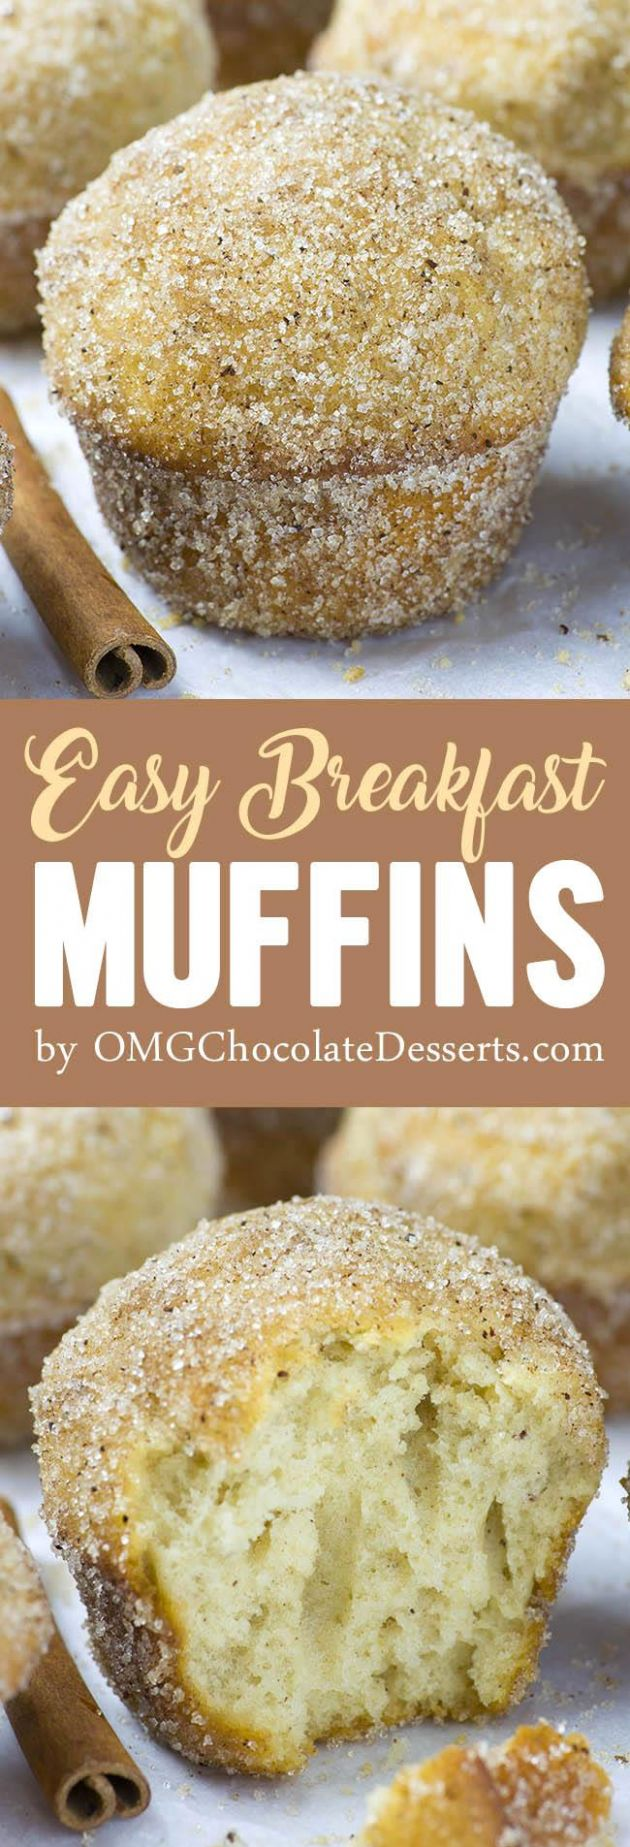 Easy Breakfast Muffins | Homemade Make-Ahead Breakfast Muffin Recipe